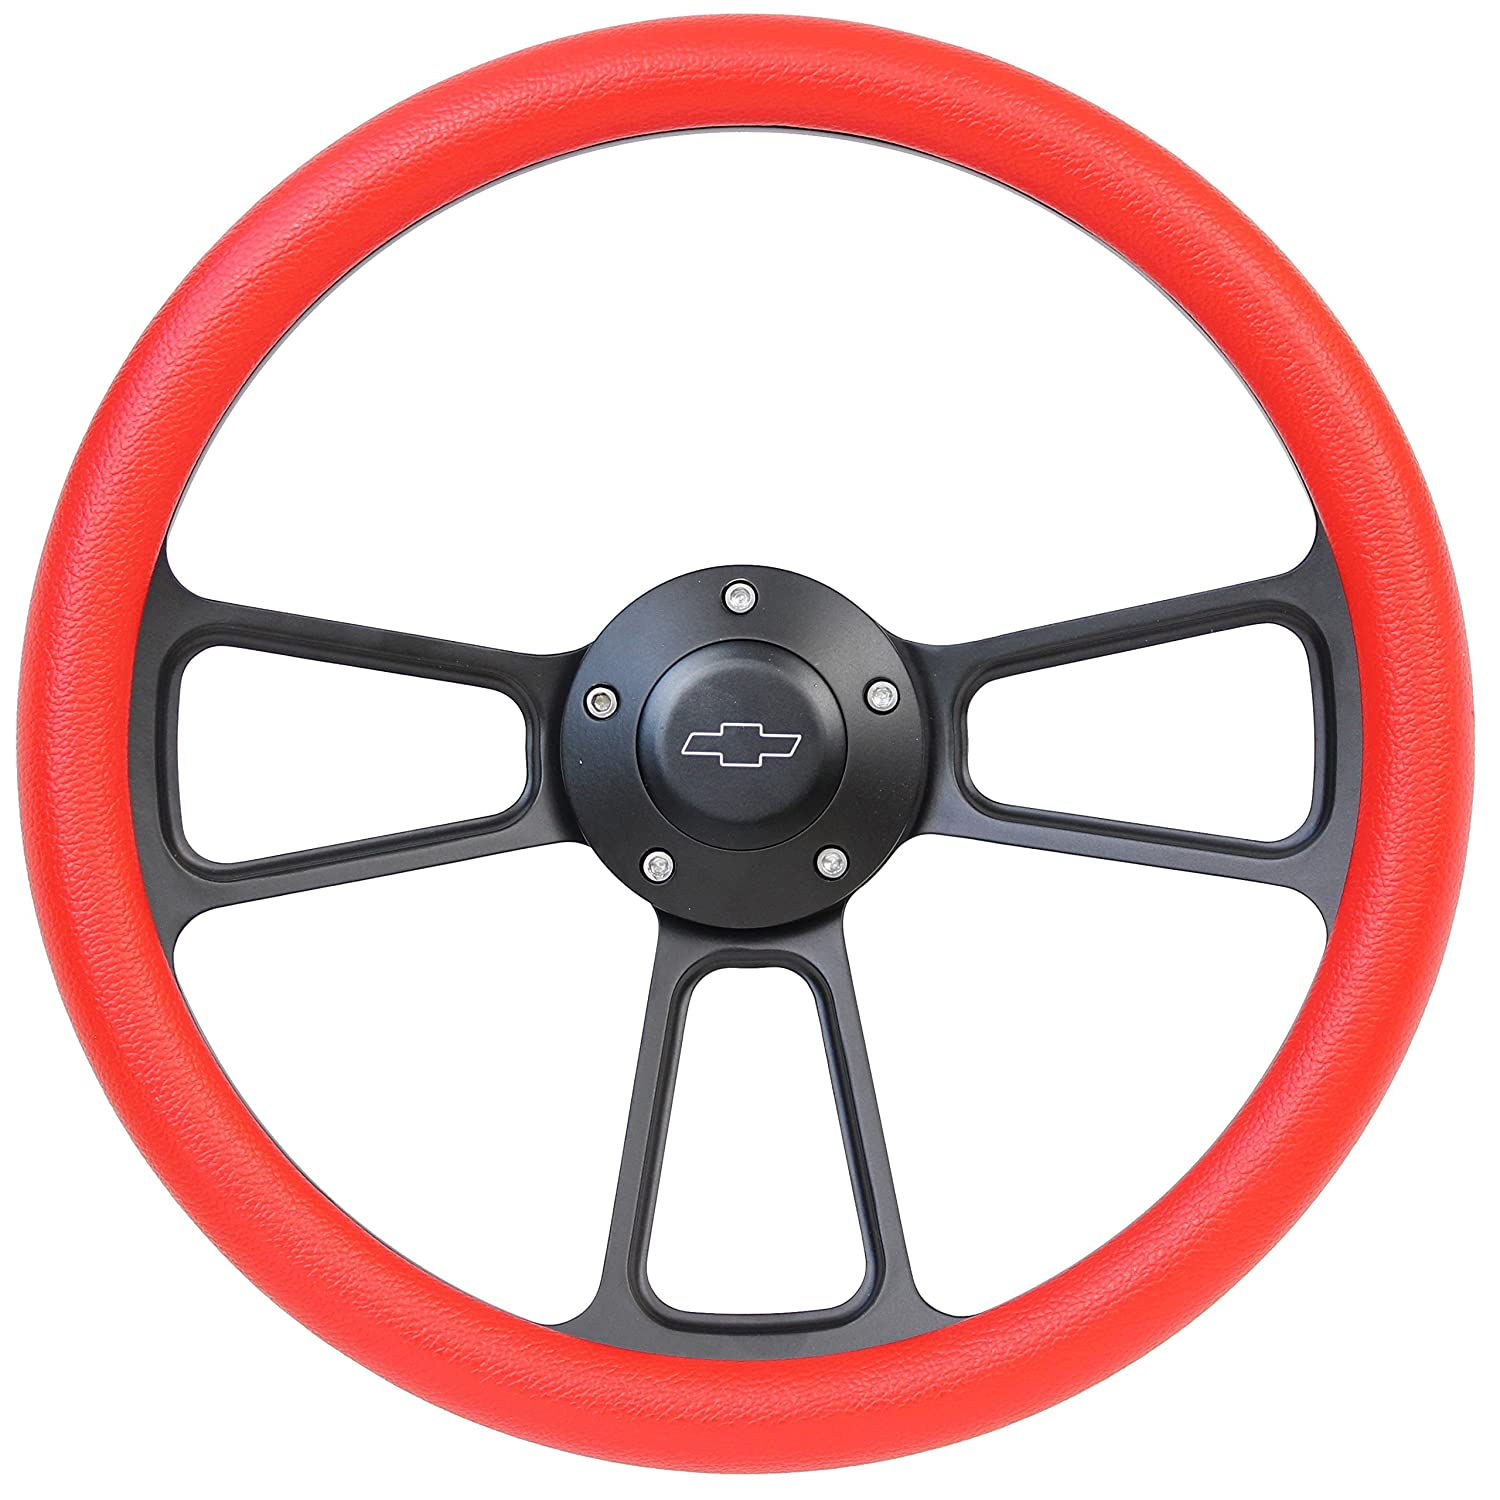 5-bolt Black Steering Wheel 14 Inch Aluminum with Red Vinyl Wrap and Chevy Horn Button Forever Sharp